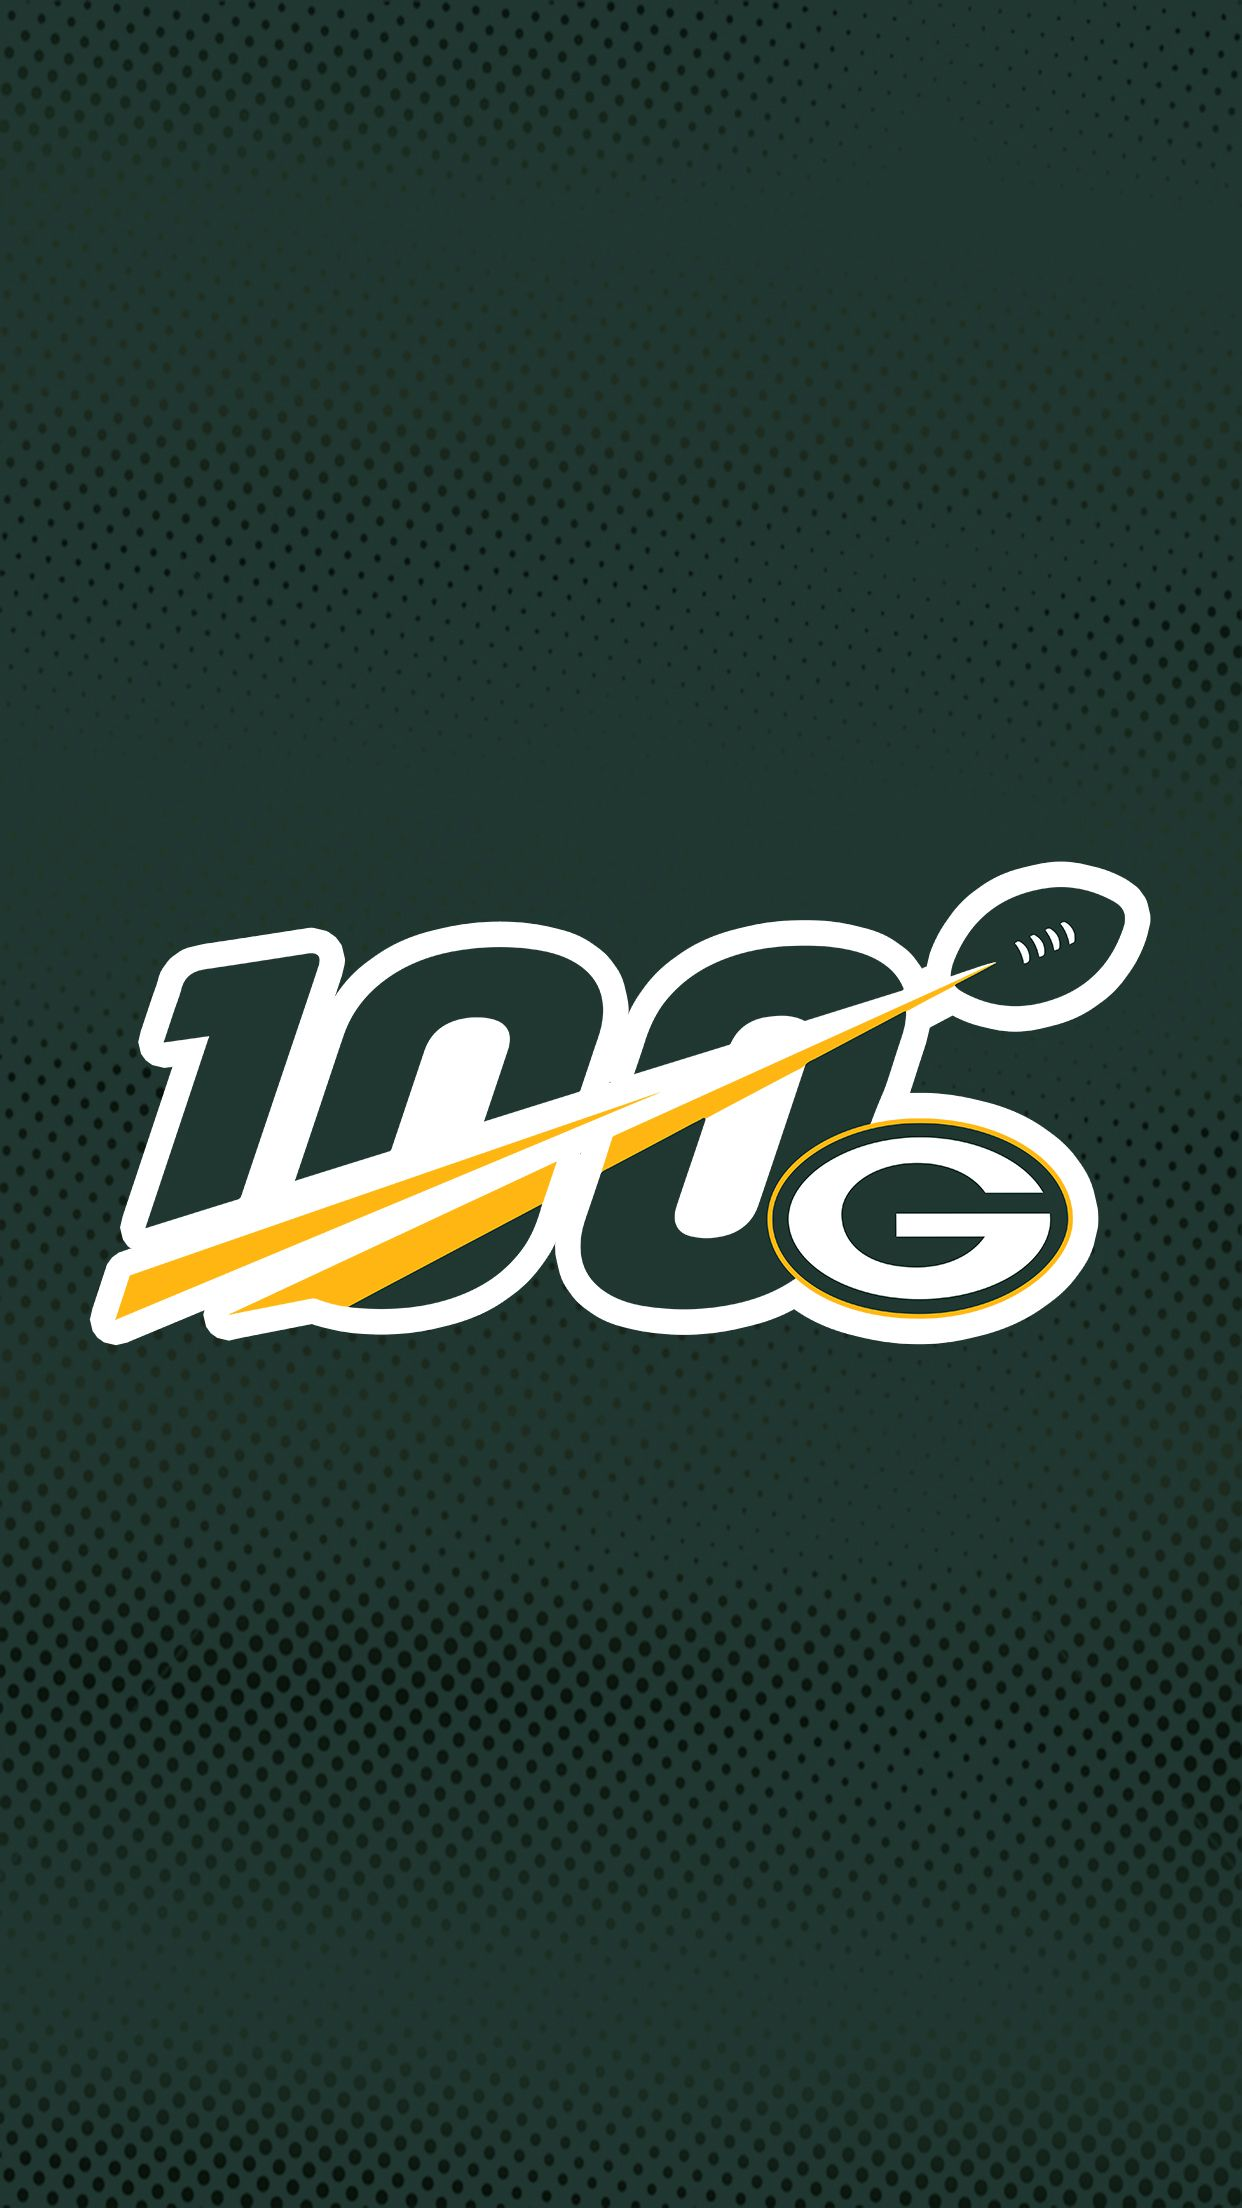 Green Bay Packers Nfl 100 Fanart Wallpaper Green Bay Packers Wallpaper Green Bay Packers Logo Green Bay Packers